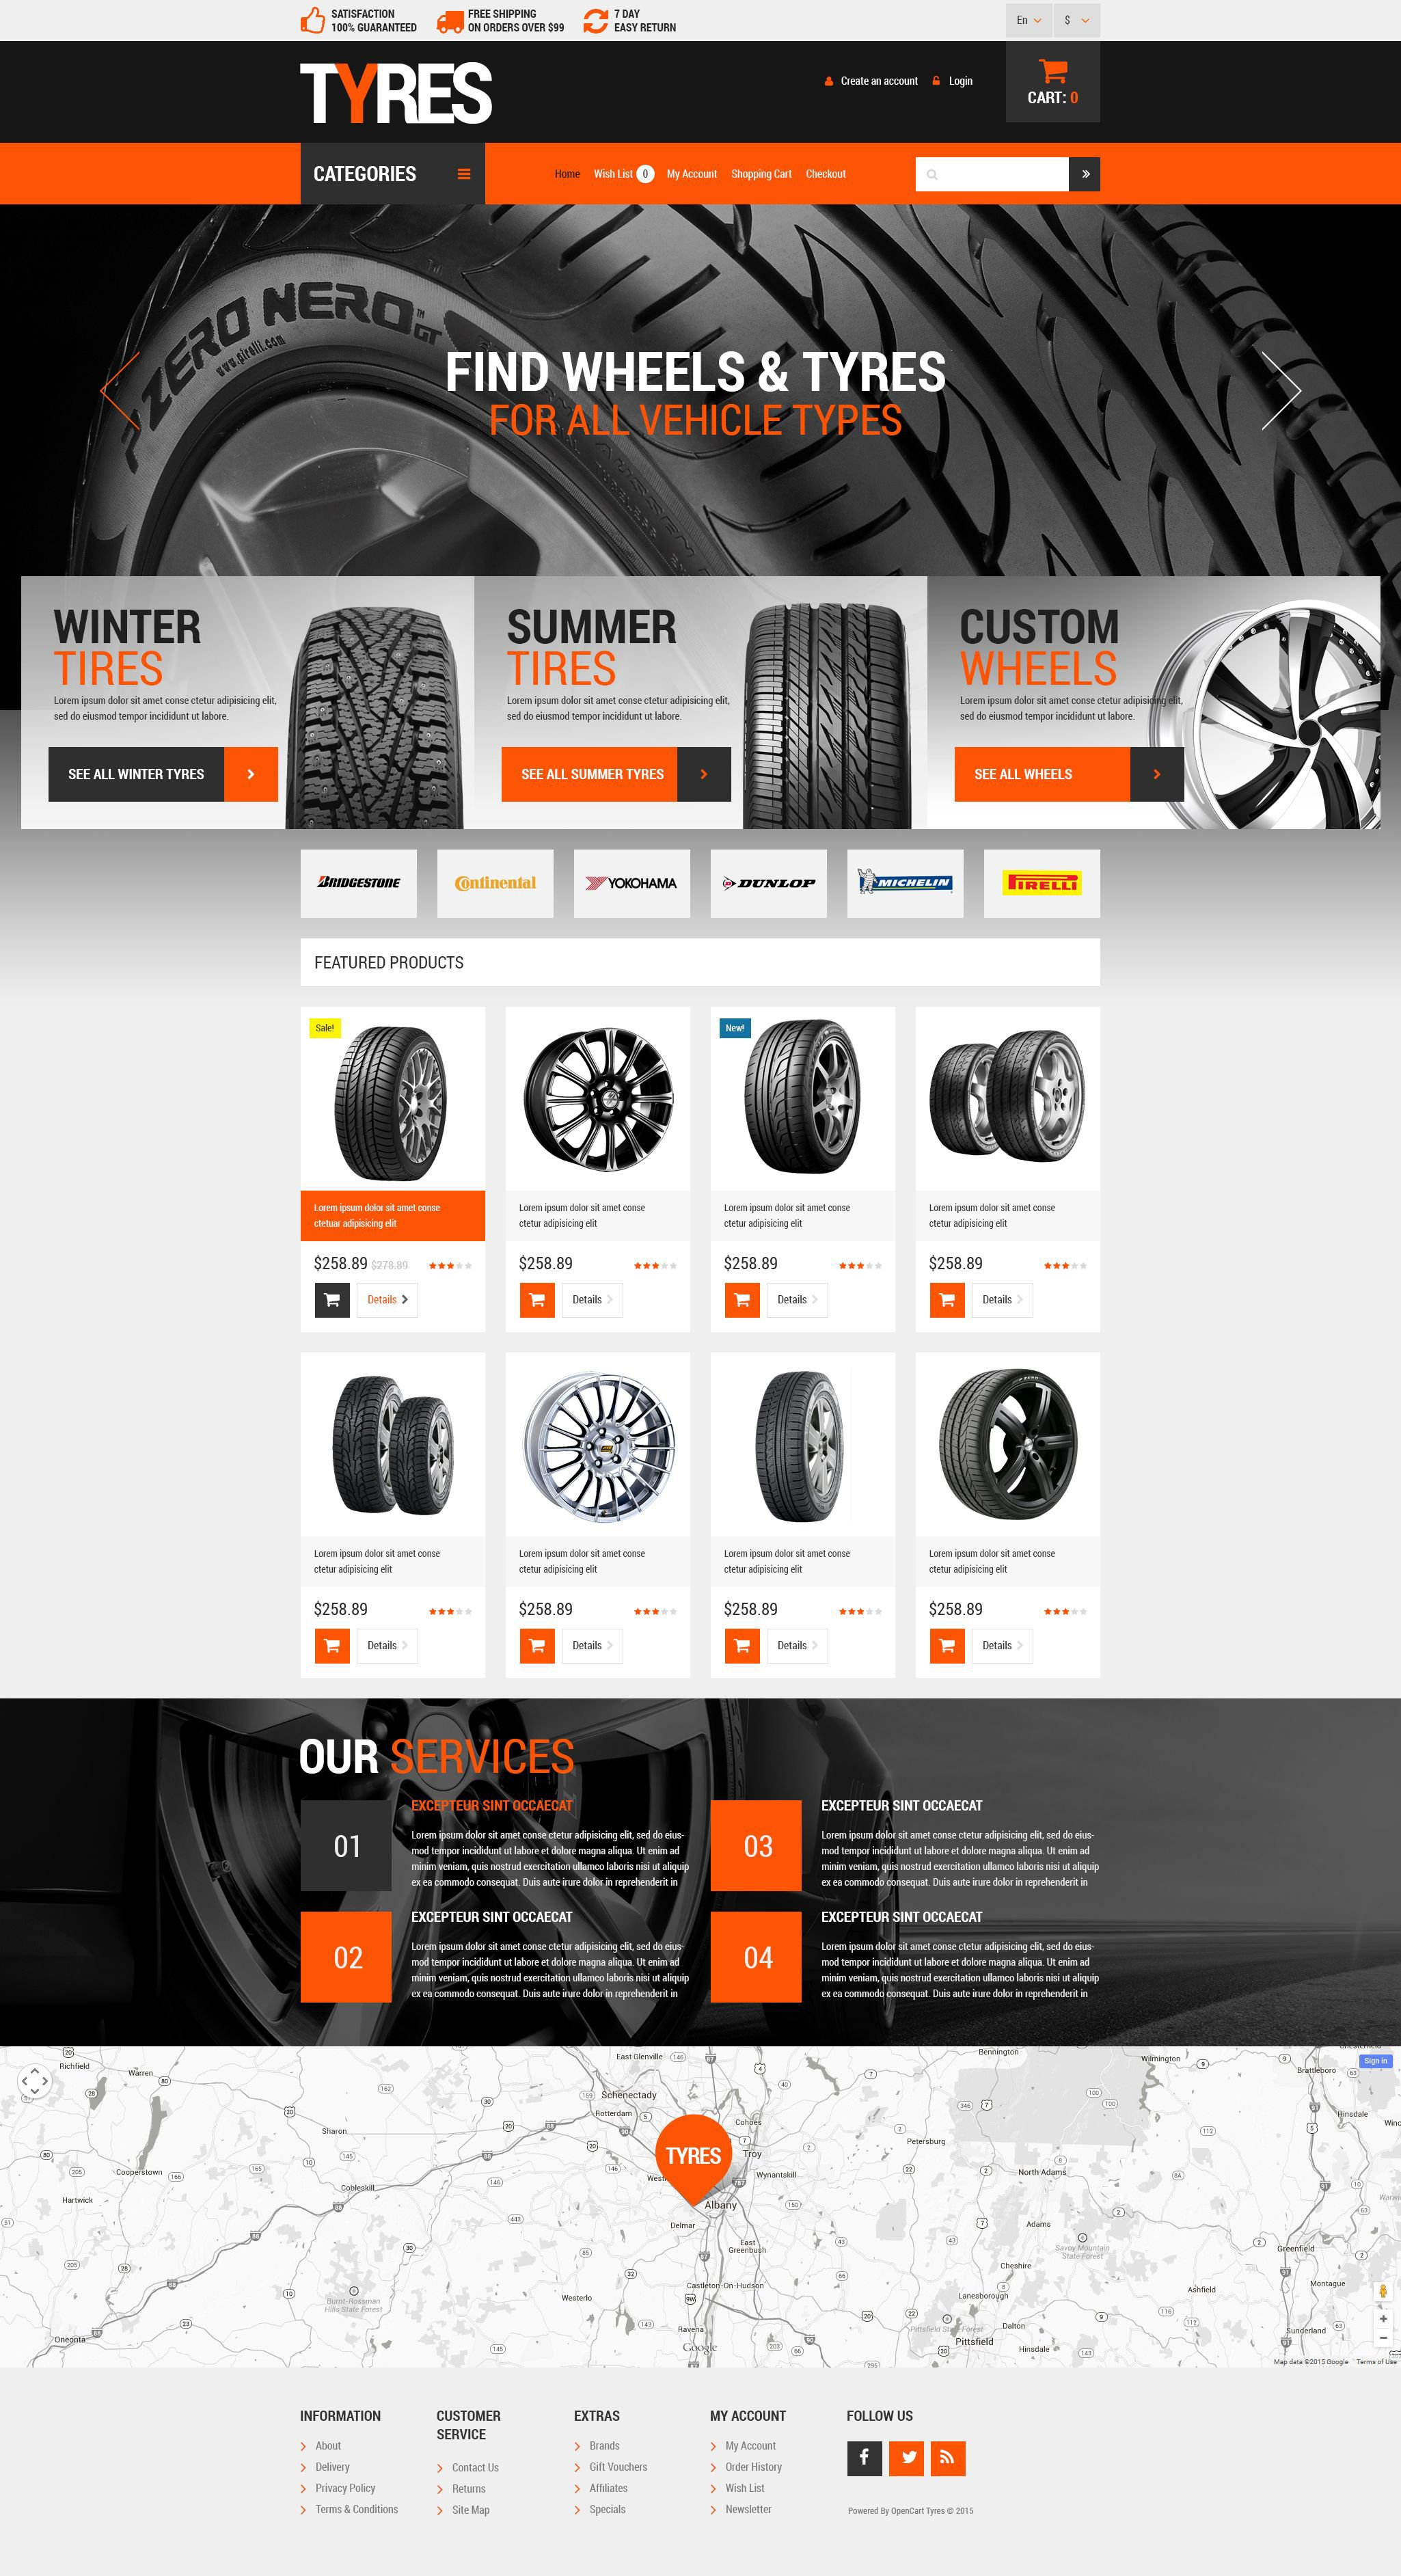 The Tyres Tires & Wheels Online Store OpenCart Design 53498, one of the best OpenCart templates of its kind (cars, most popular), also known as tyres Tires & Wheels online store OpenCart template, car OpenCart template, automobile engine OpenCart template, valves OpenCart template, spares OpenCart template, parts OpenCart template, filter OpenCart template, gauges OpenCart template, styling OpenCart template, shop OpenCart template, shopping cart OpenCart template, speed and related with tyres Tires & Wheels online store, car, automobile engine, valves, spares, parts, filter, gauges, styling, shop, shopping cart, speed, etc.